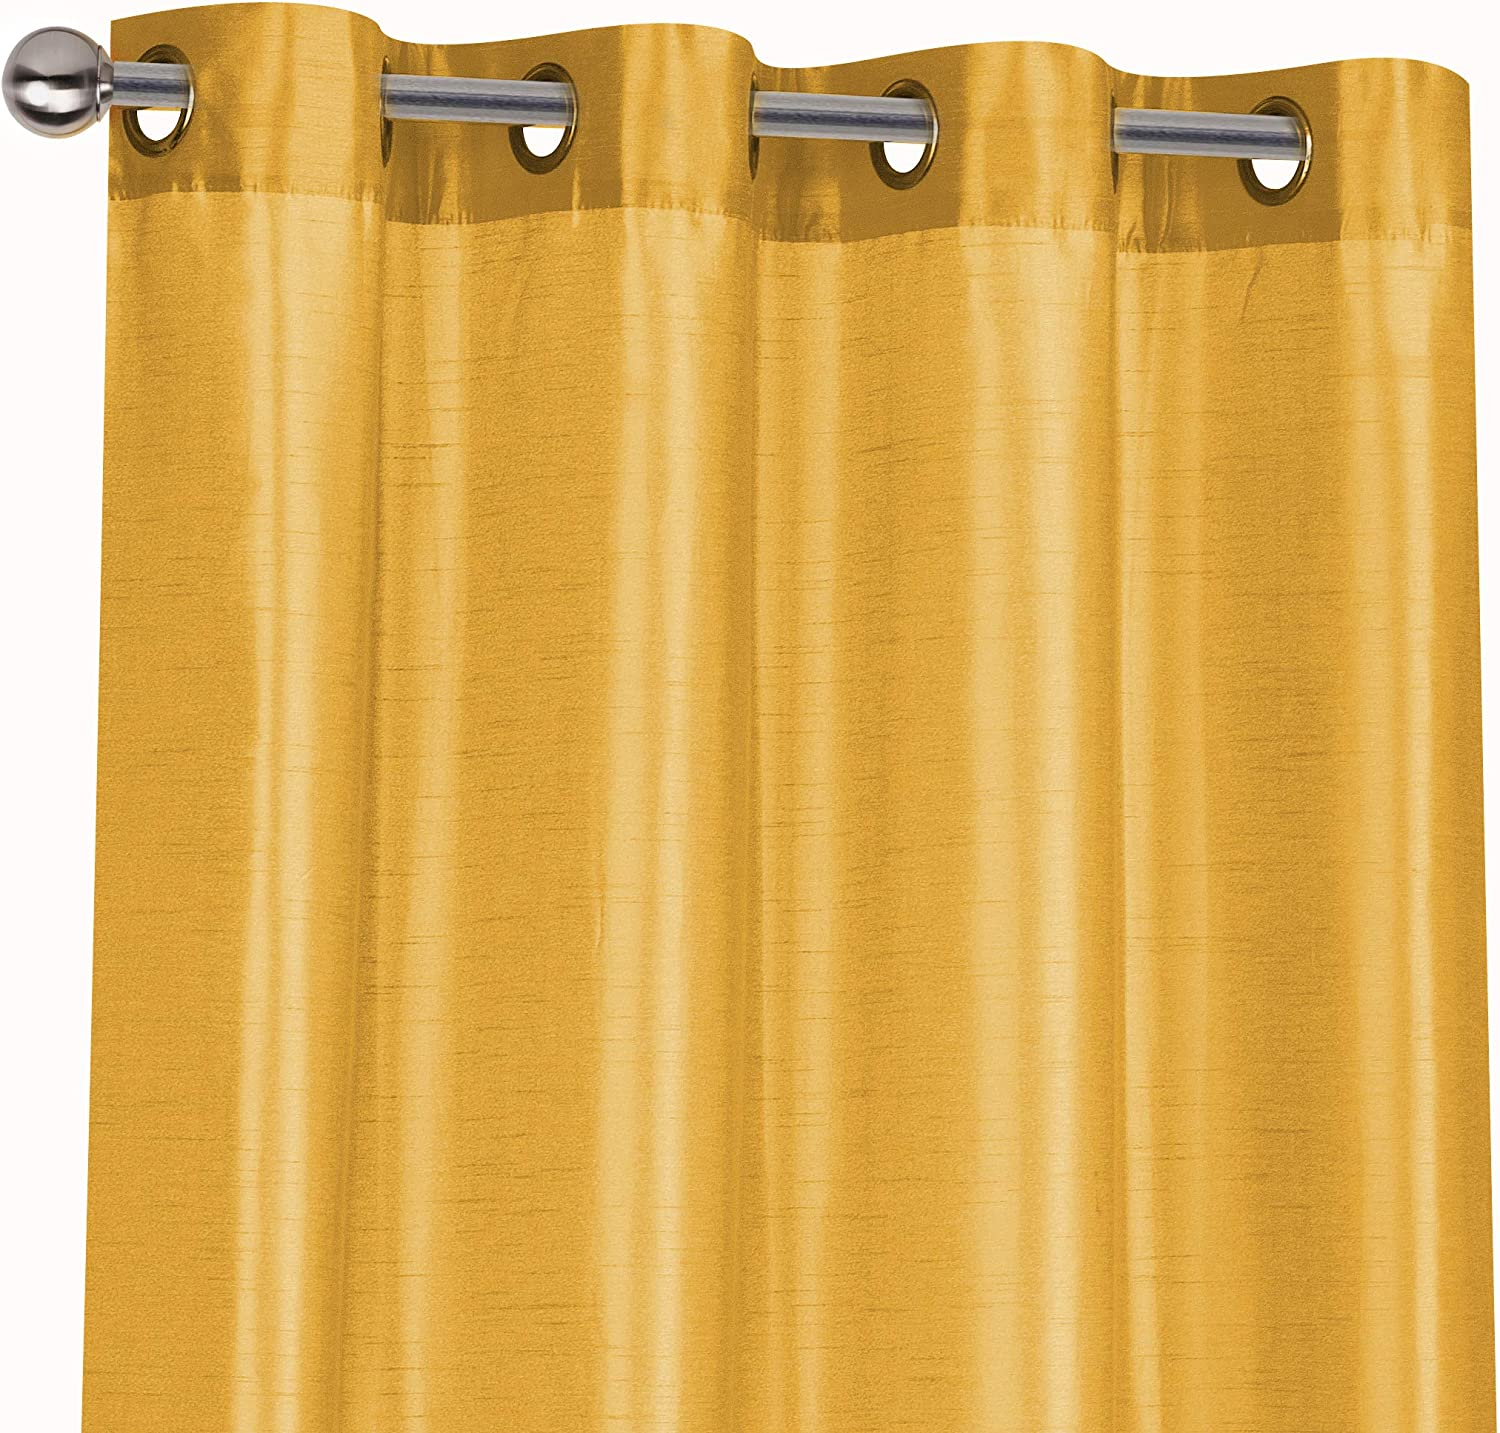 Regal Home Collections 2 Pack Semi Sheer Faux Silk Grommet Curtains Assorted Colors Gold Home Kitchen